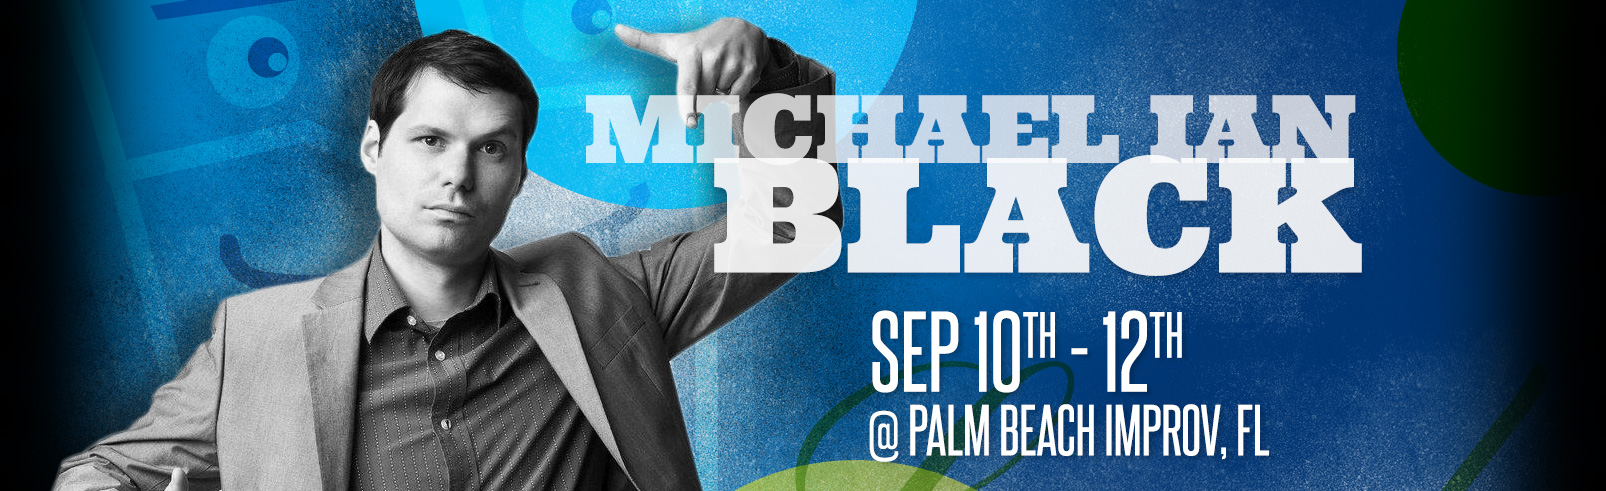 Michael Ian Black @ Palm Beach Improv